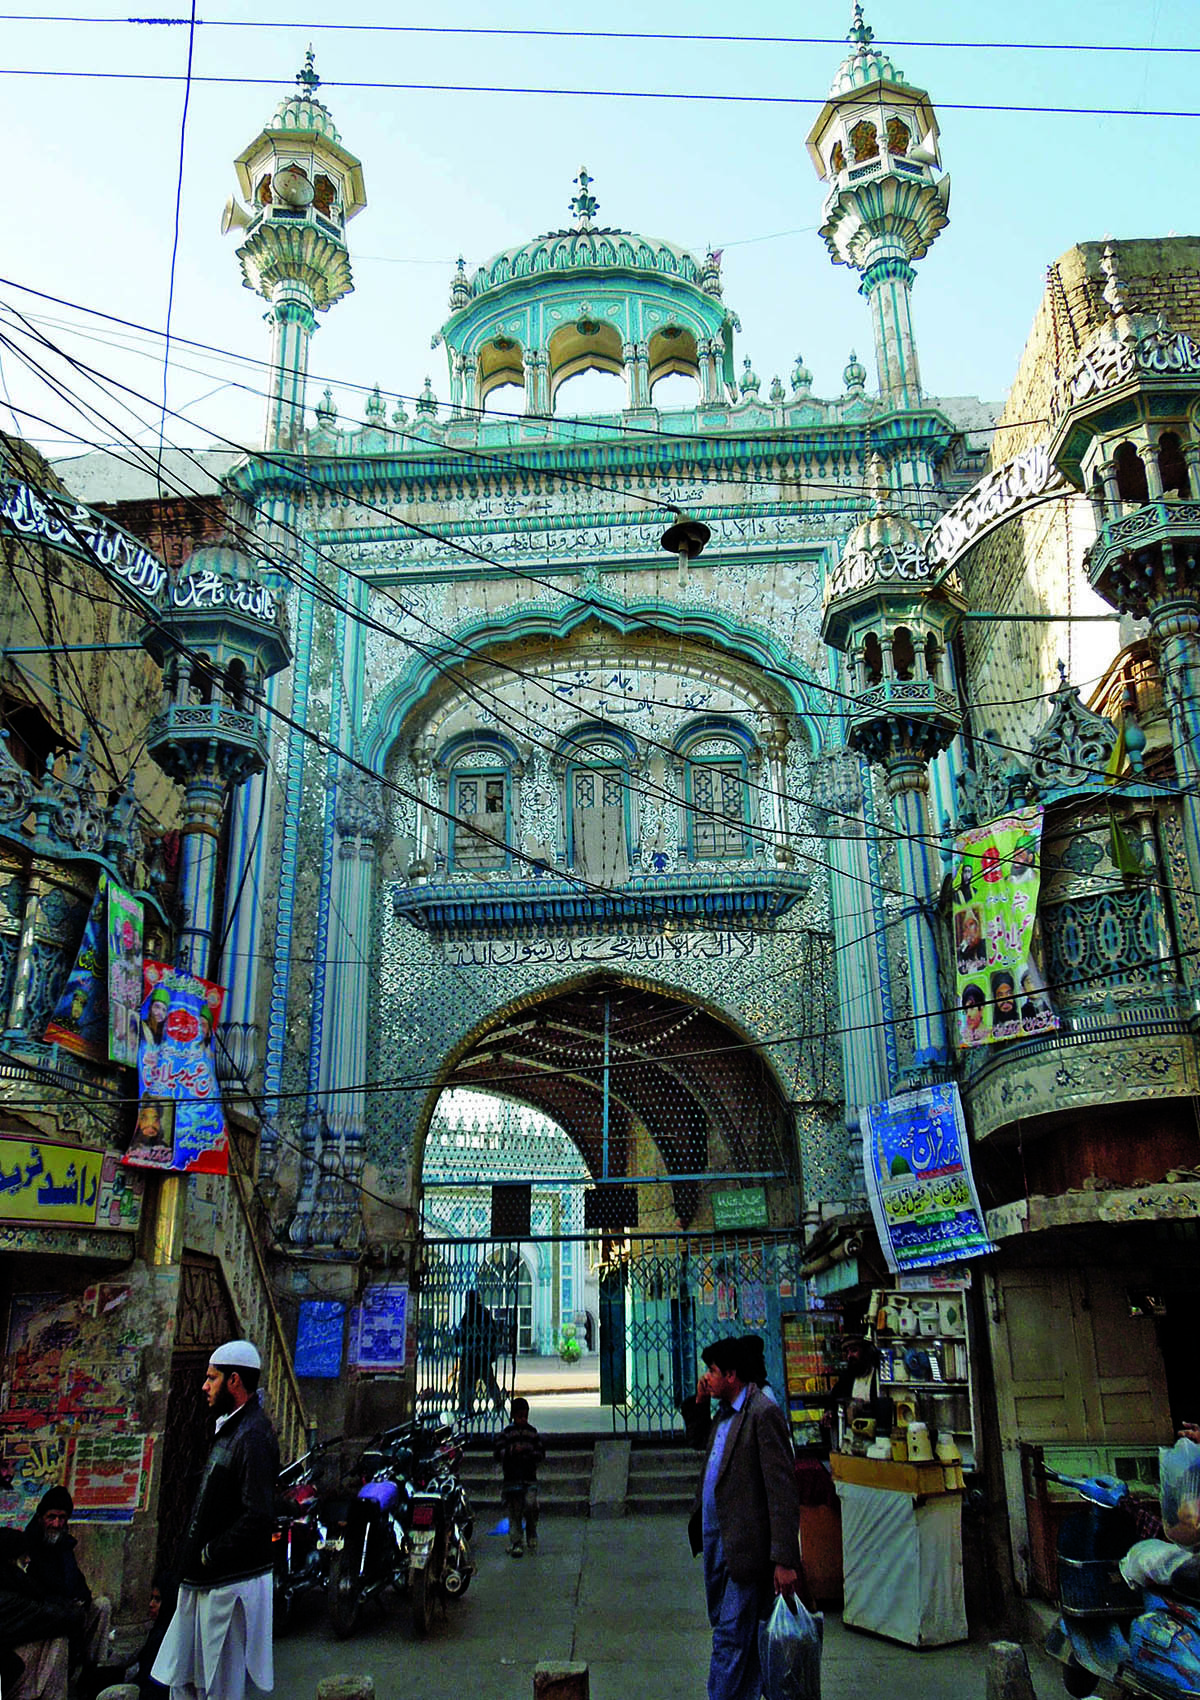 The grand entrance of the Jamia Masjid with glass and paint work stands out from the clutter of modern hoardings and wires surrounding it